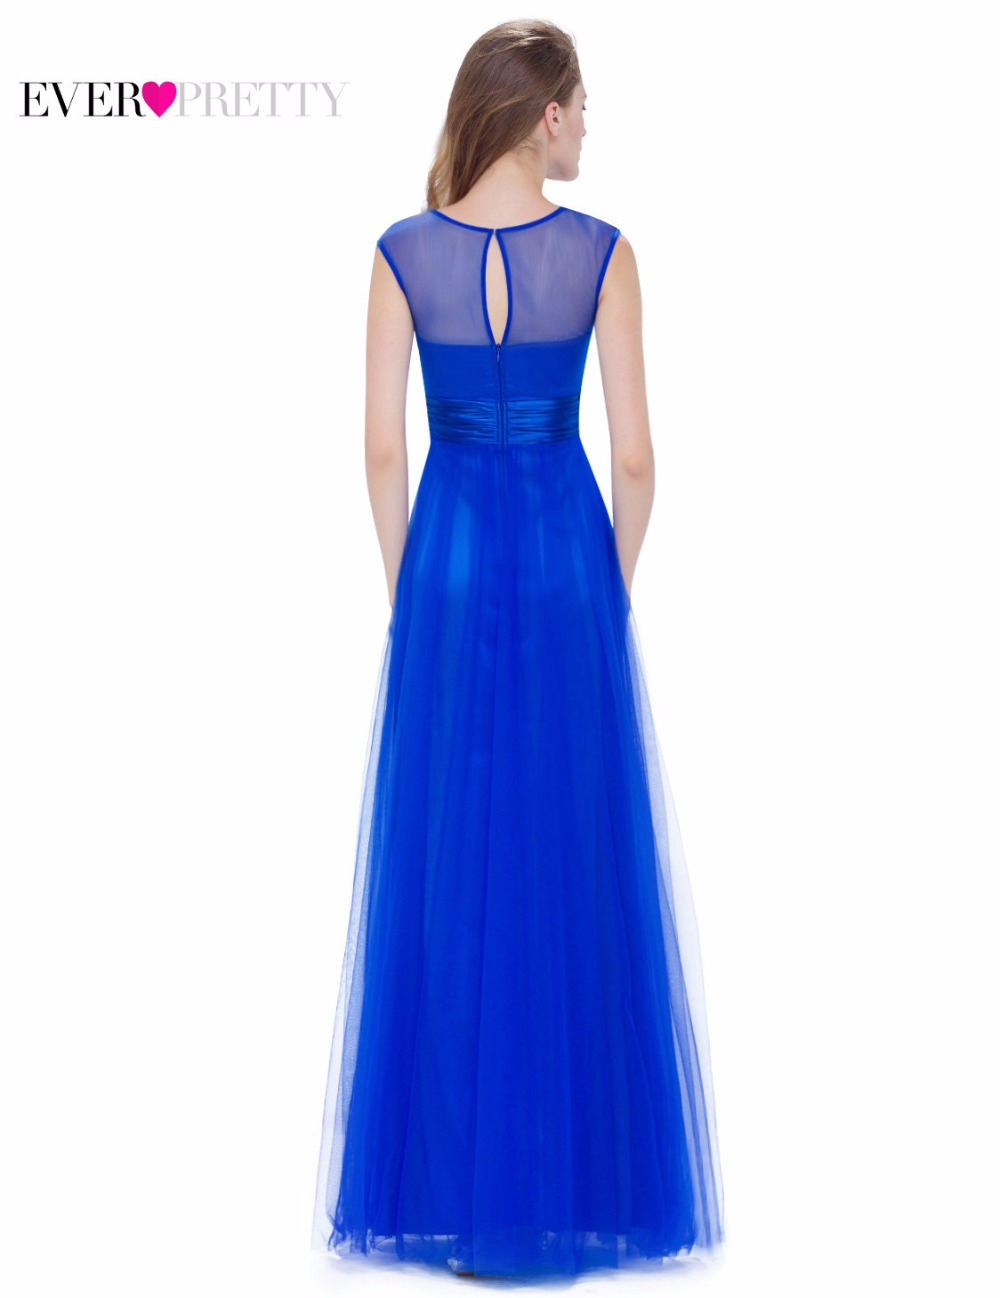 1f8ca05b74b Fashion Sapphire Blue Evening Party Dress A Line Ever Pretty EP08899SB New  arrival Women Elegant Sleeveless Long Dress 2018-in Evening Dresses from  Weddings ...